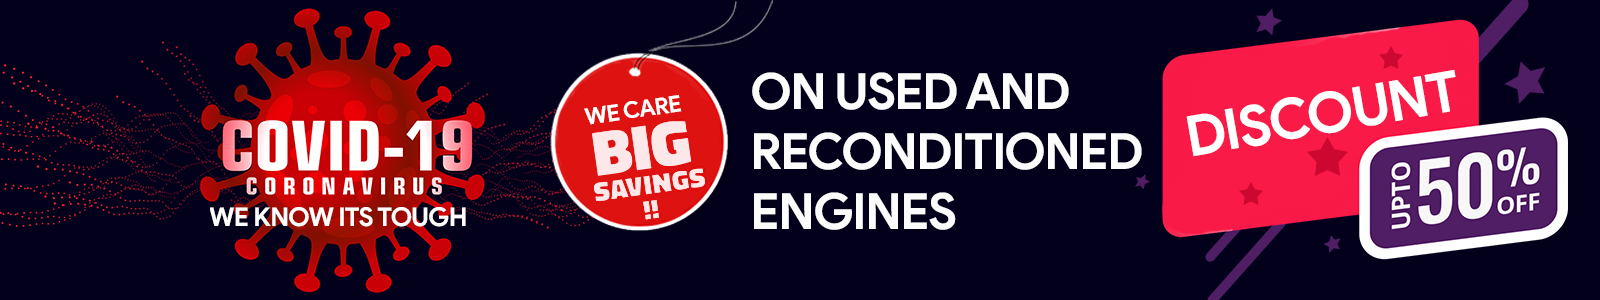 Used and Reconditioned Engines